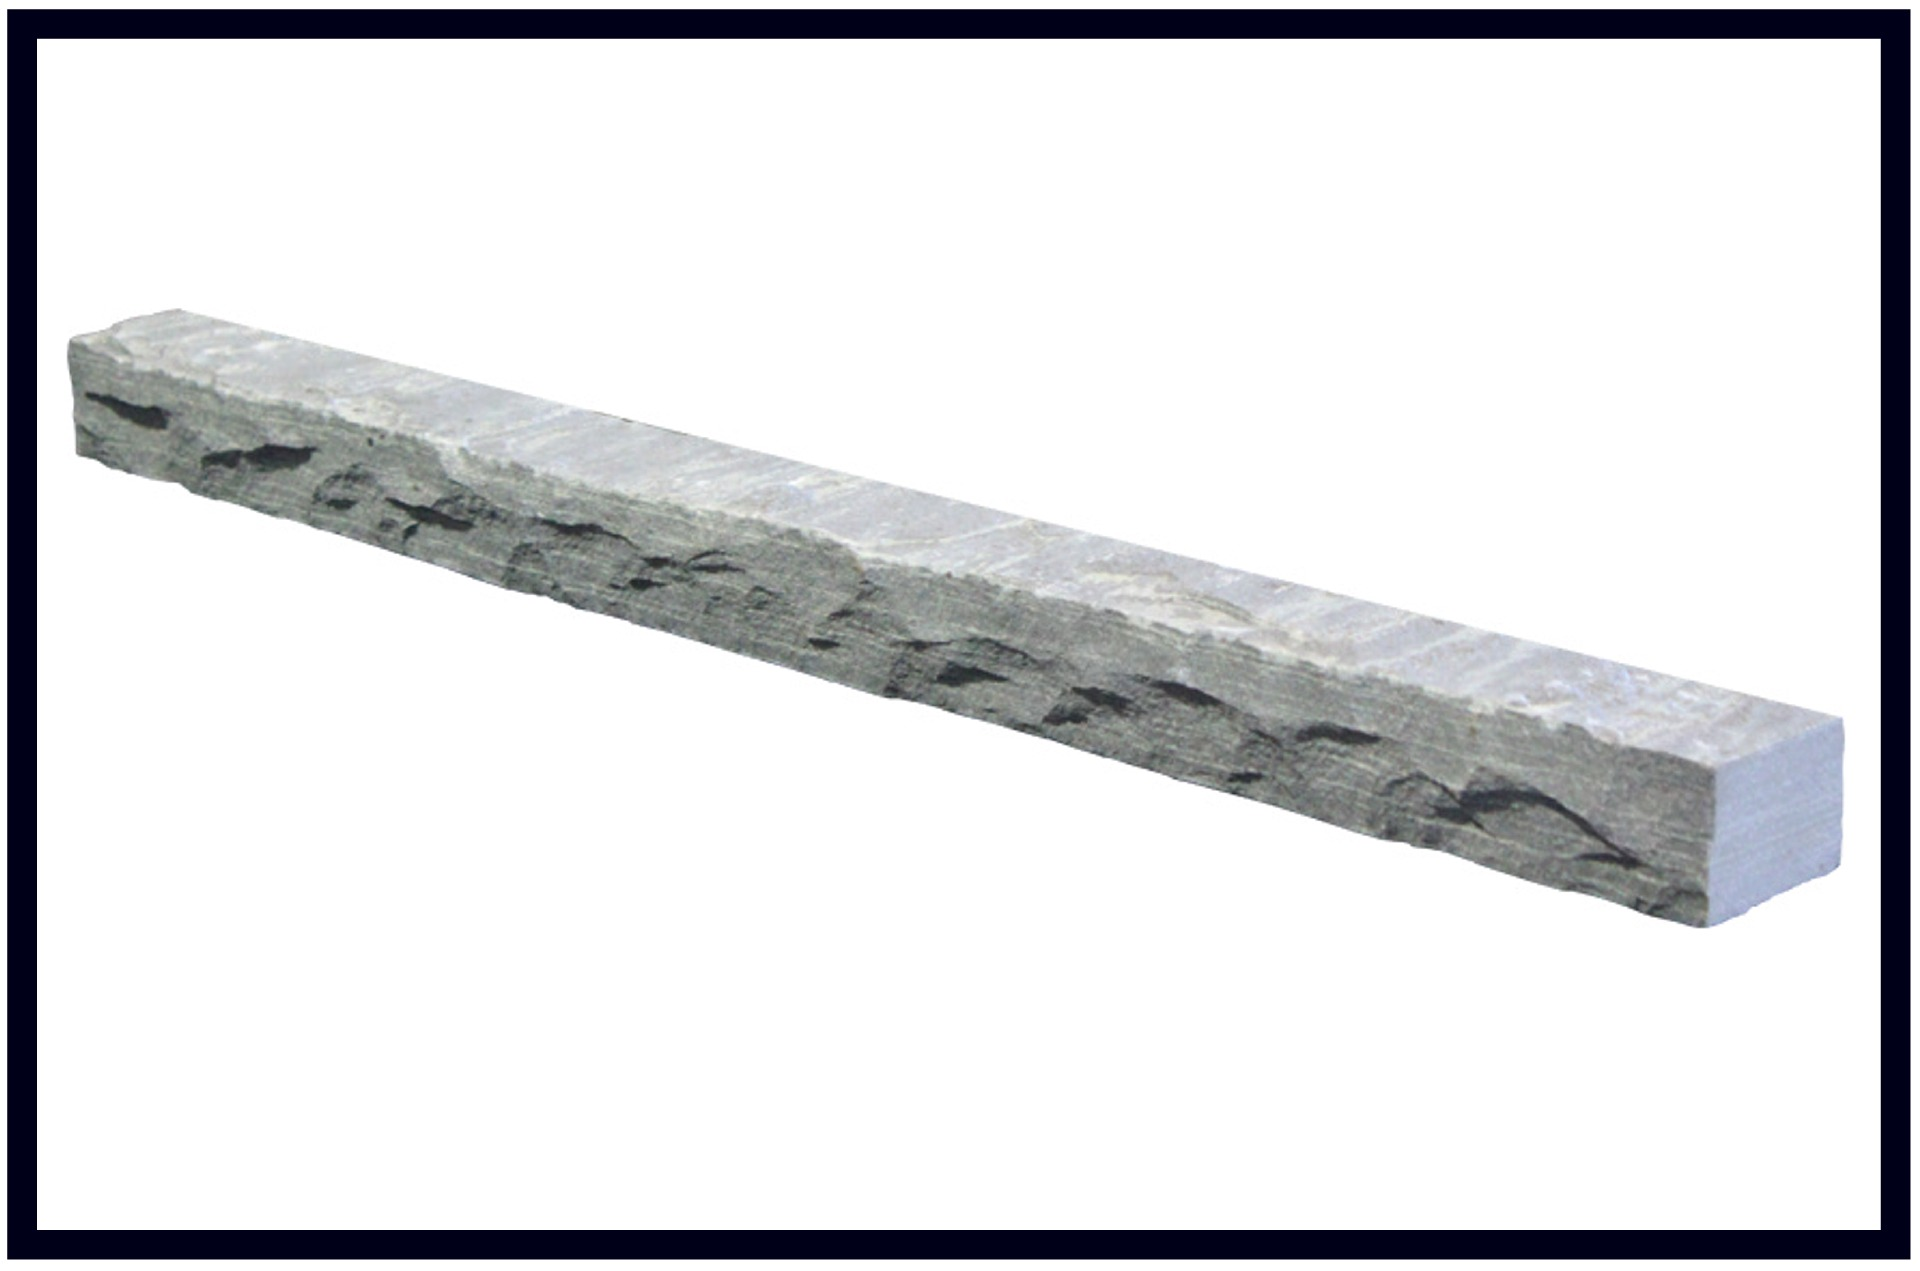 watertable sills - VIEW IN GALLERY